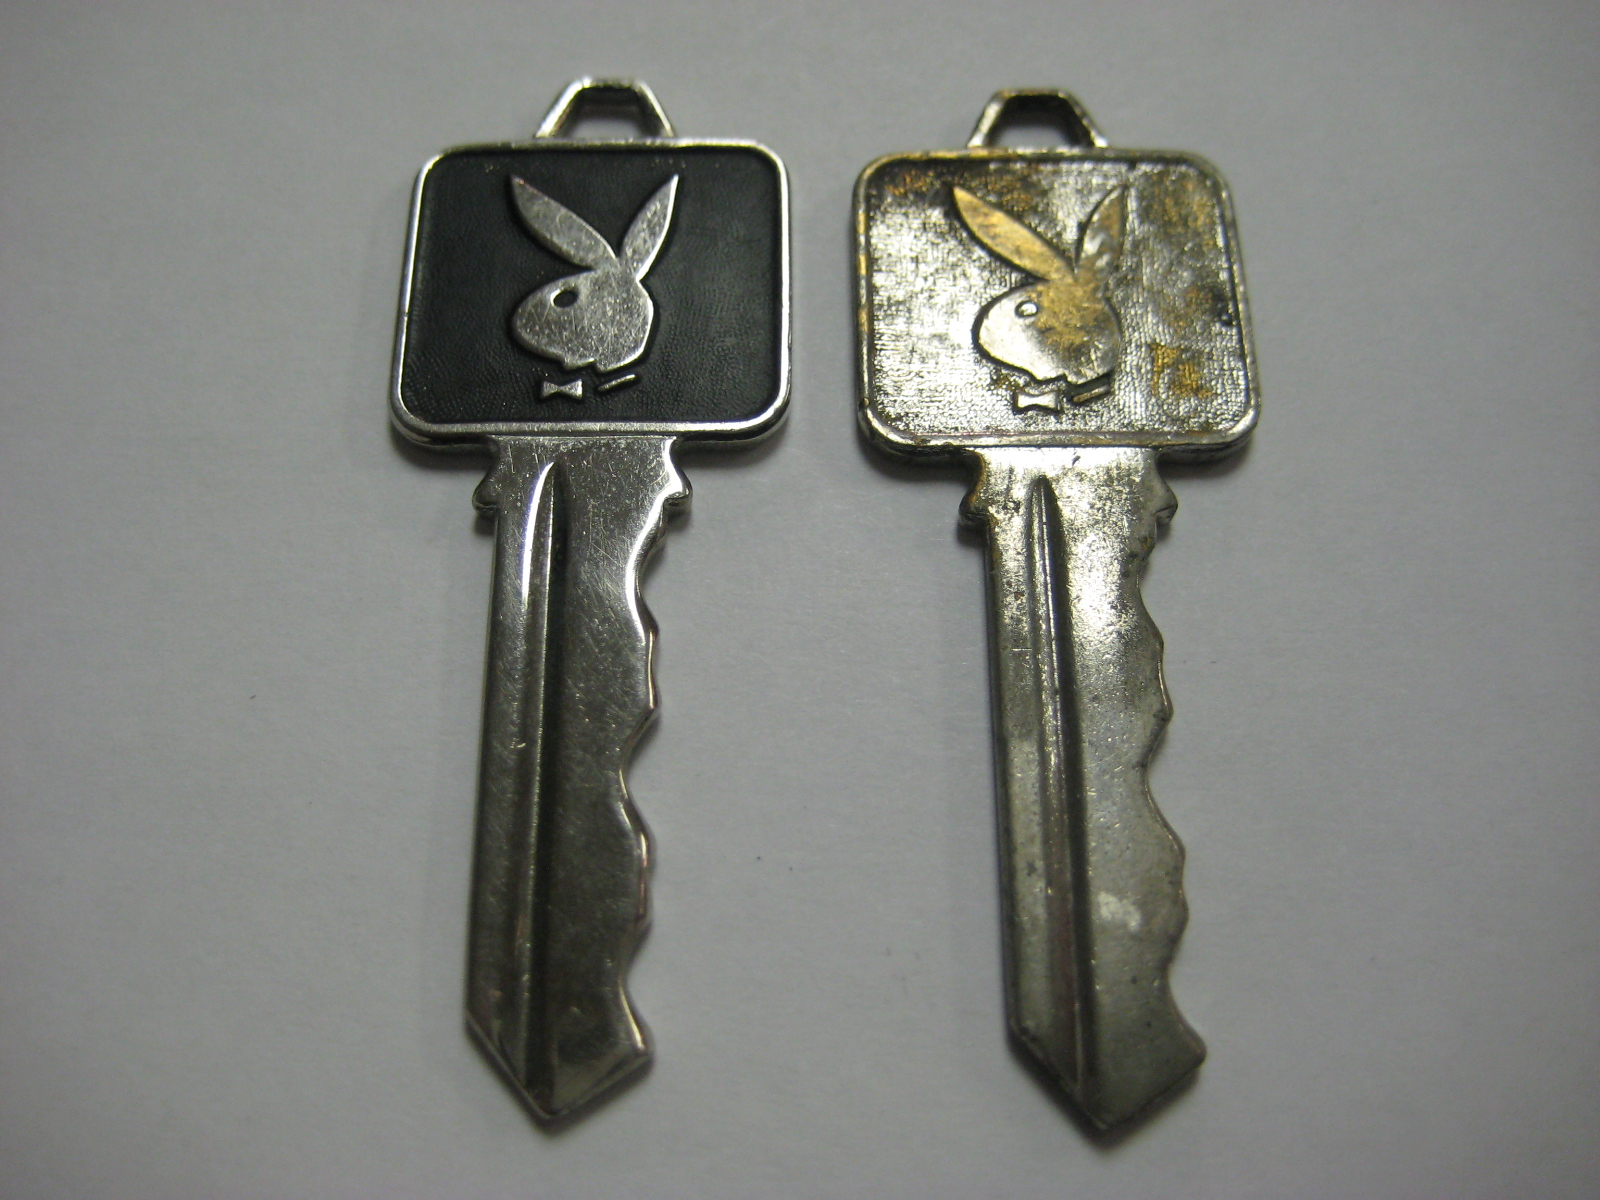 Boston Playboy Club Keys